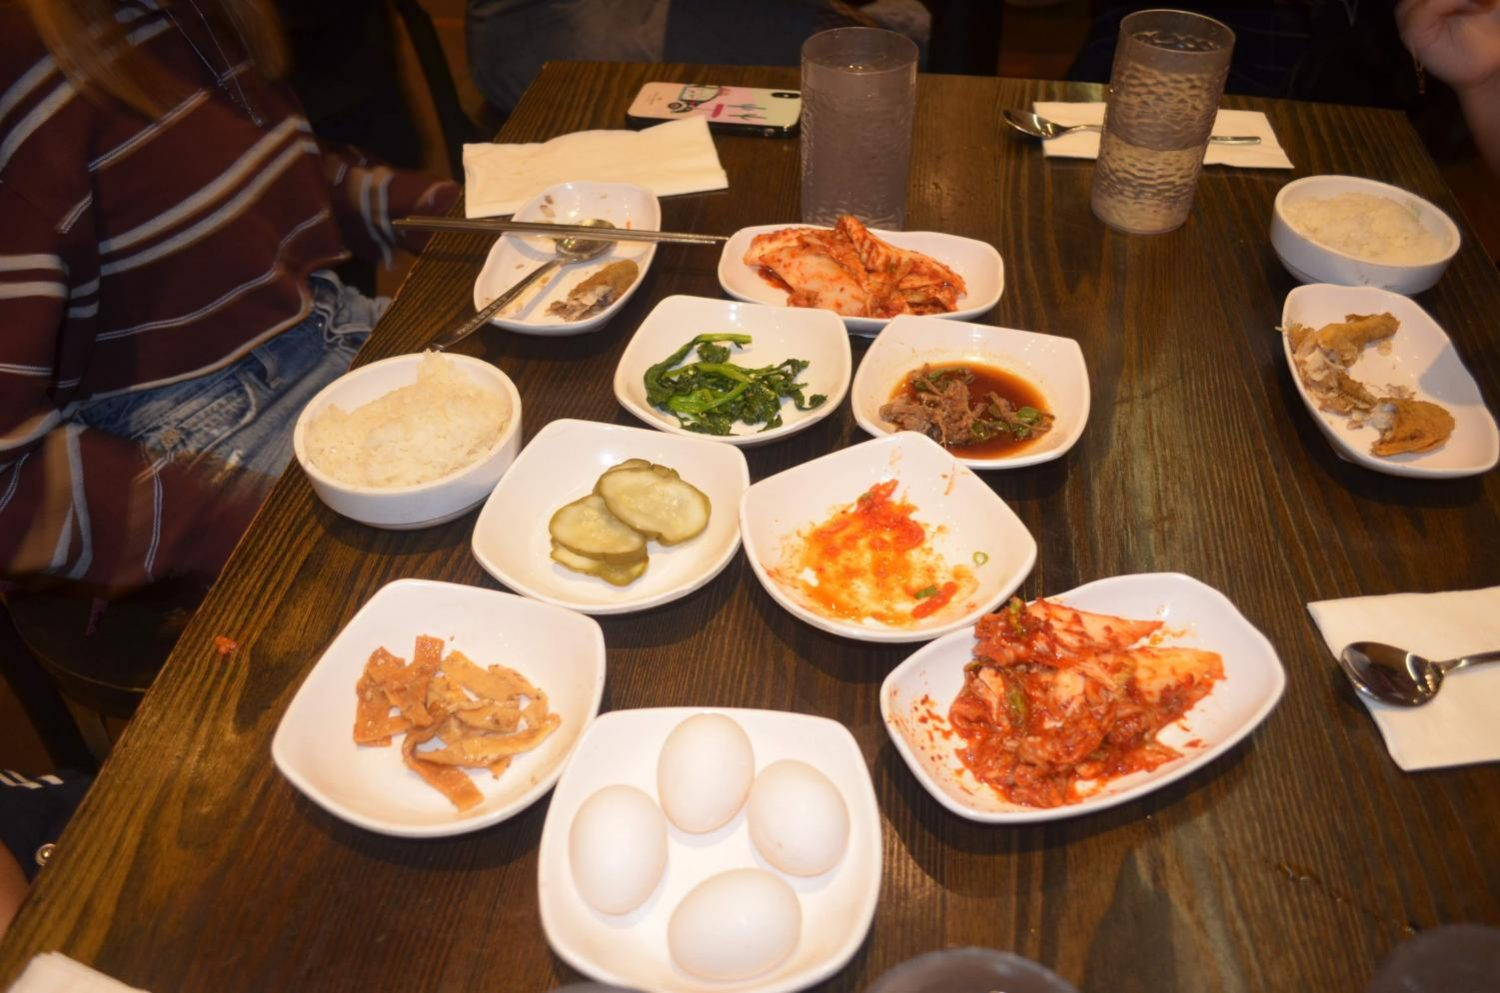 """The kimchi tofu soup consists of a raw egg, shrimps, mussels, tofu, red peppers, and beef. These simple toppings along with the steaming soup combine together to create a superb dish which exerts a spicy and savory flavor,""said Cameron Chang '20."